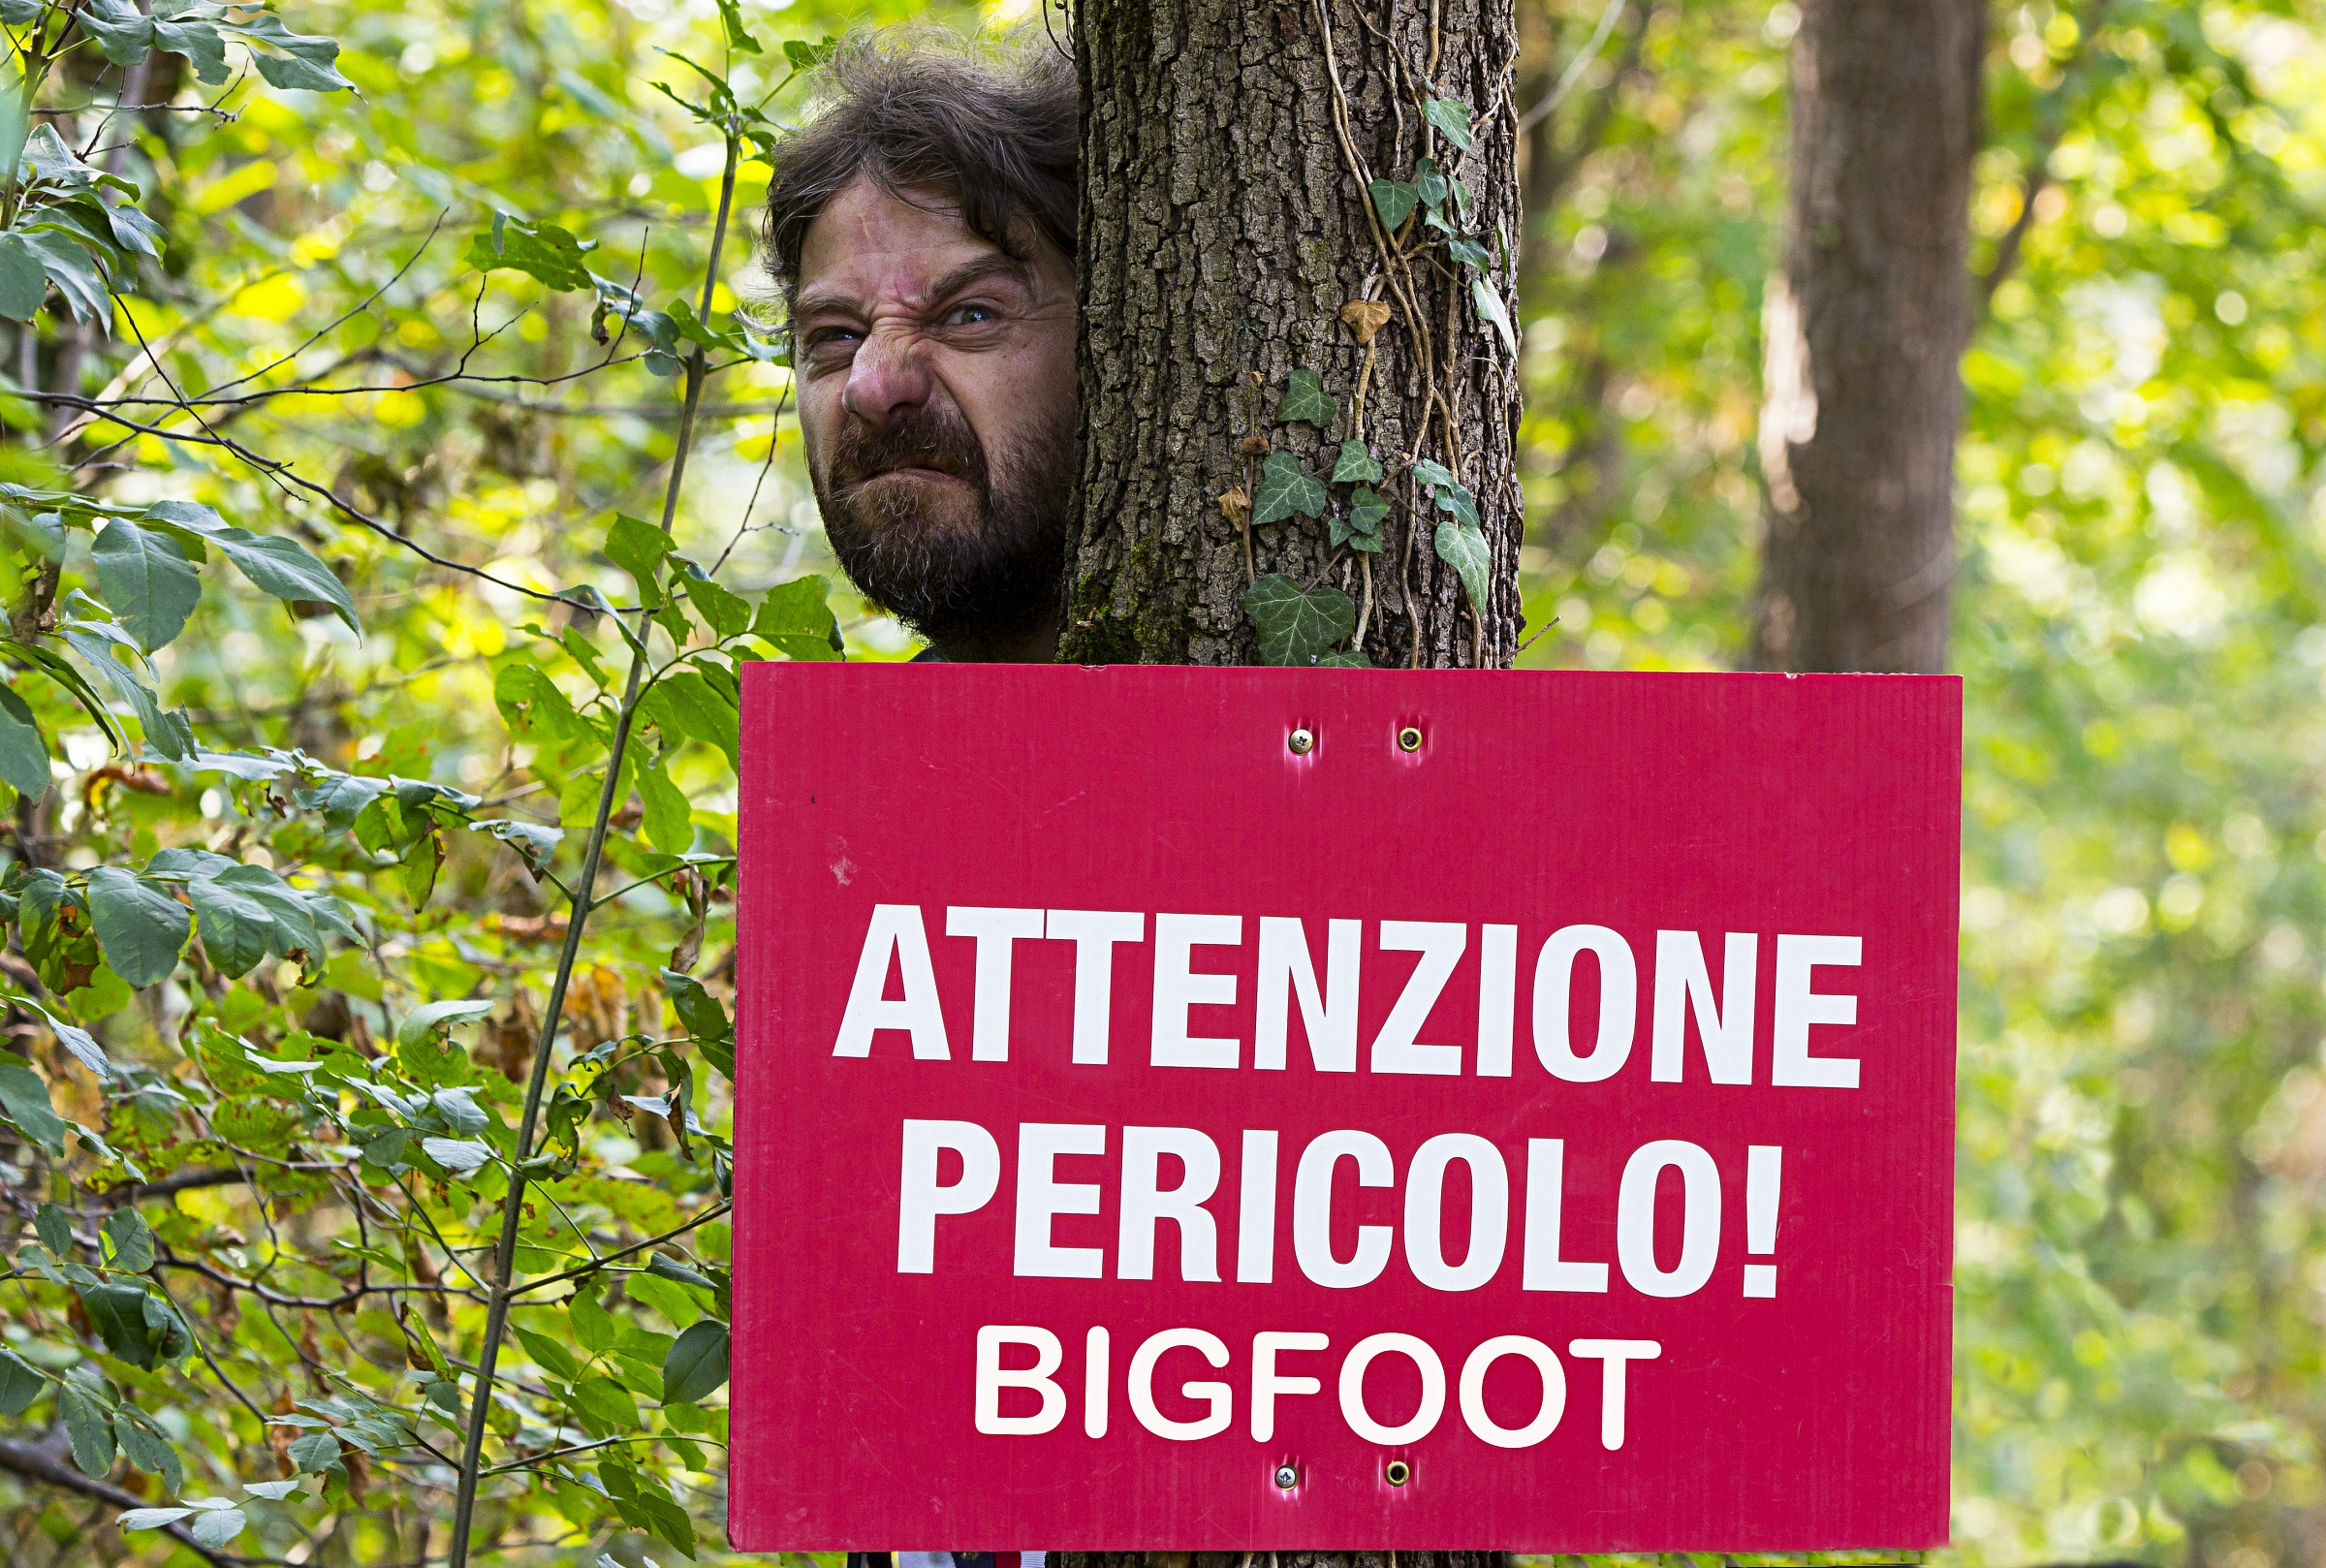 -Bigfoot and the resounding 'arrived in Italy...